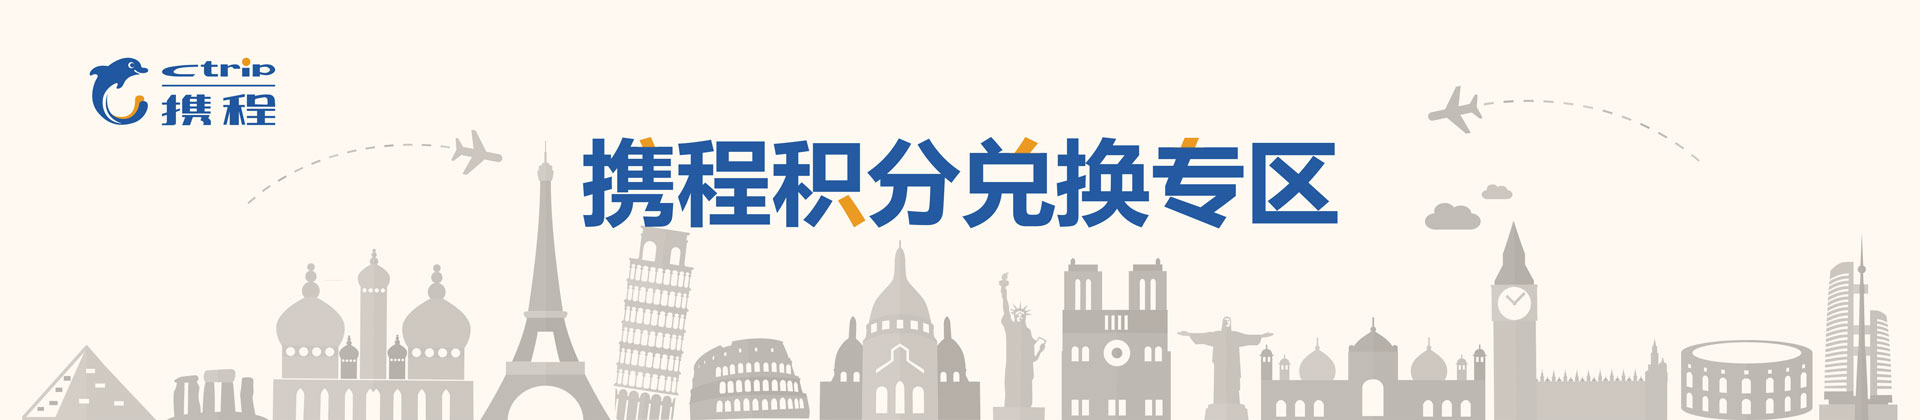 catalog/Sliders/ctrip/ctrip-1920x420-cn.jpg